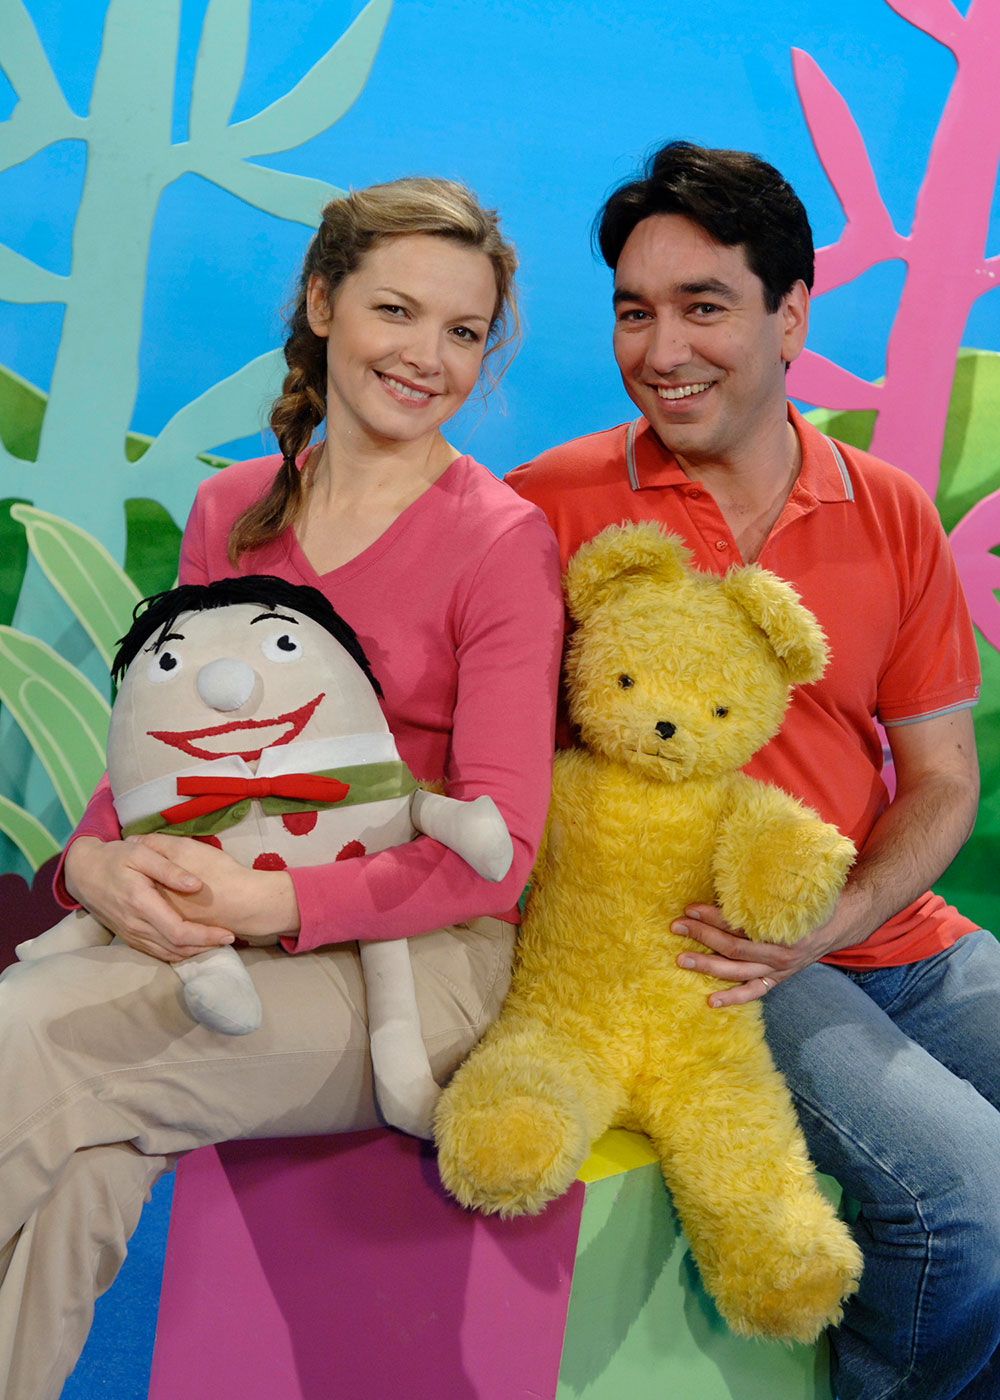 Justine Clarke and Alex Papps - click to view larger image